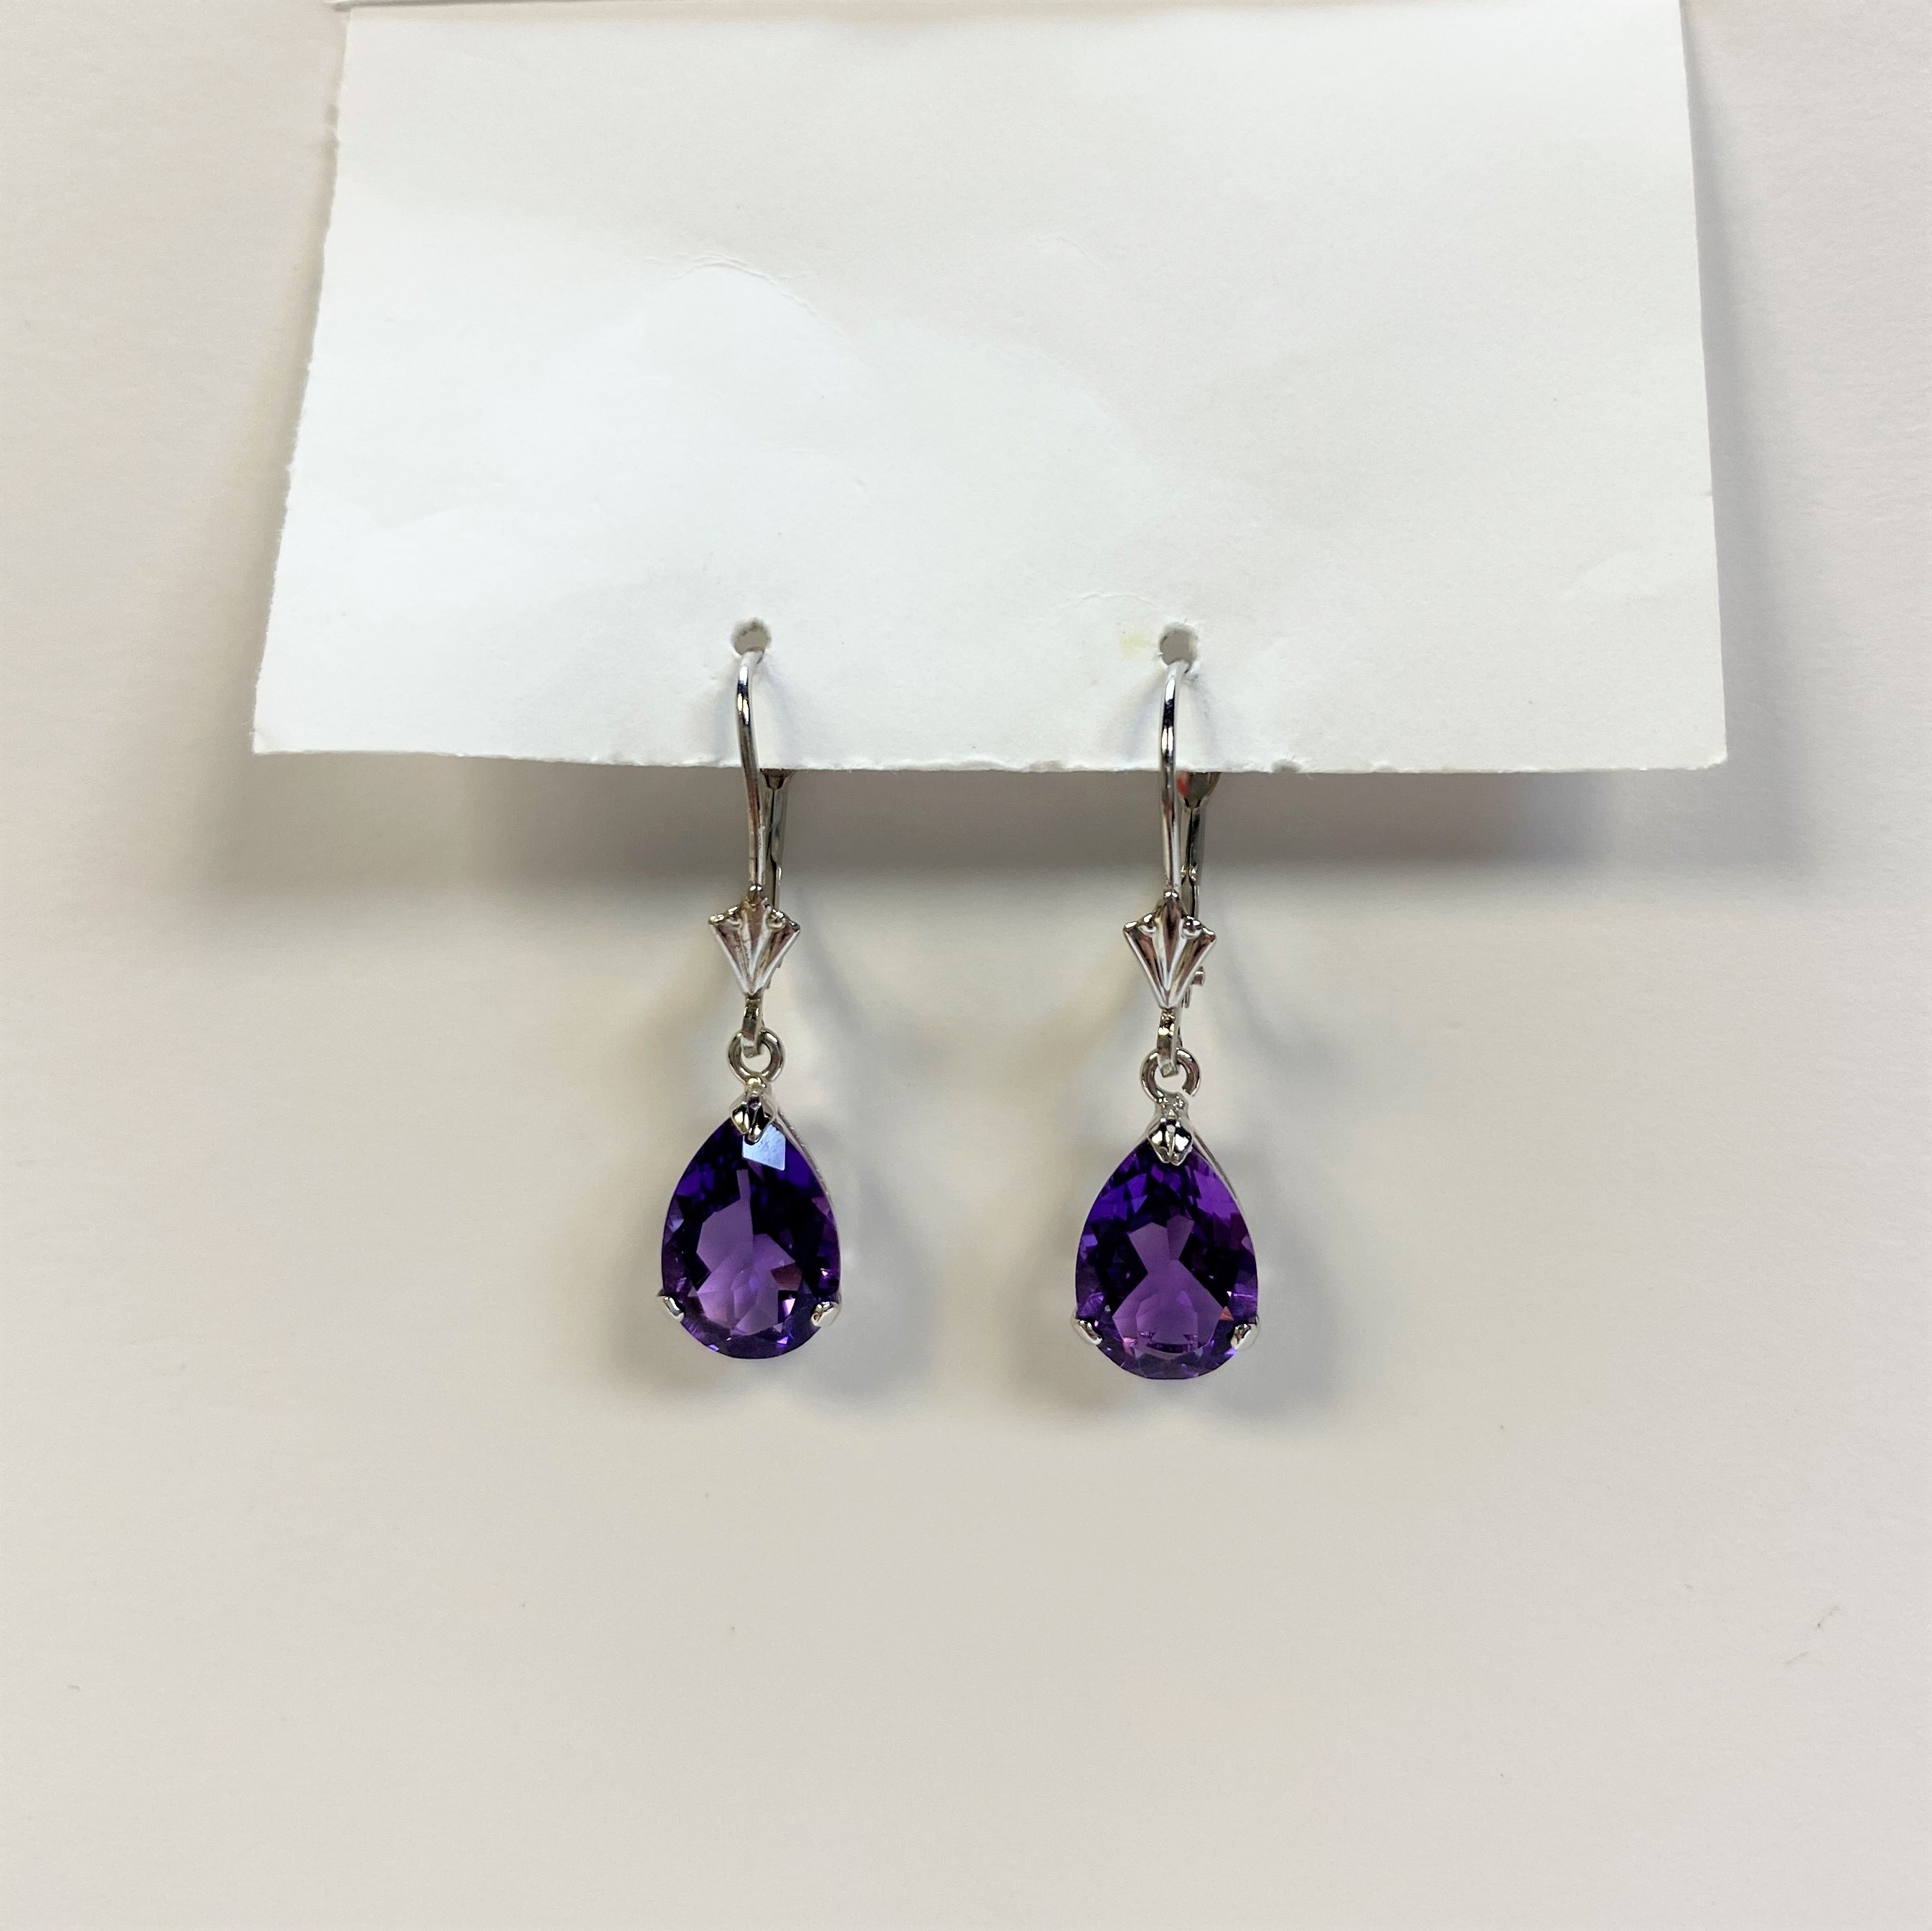 2 Carats Total Weight Amethyst Earrings